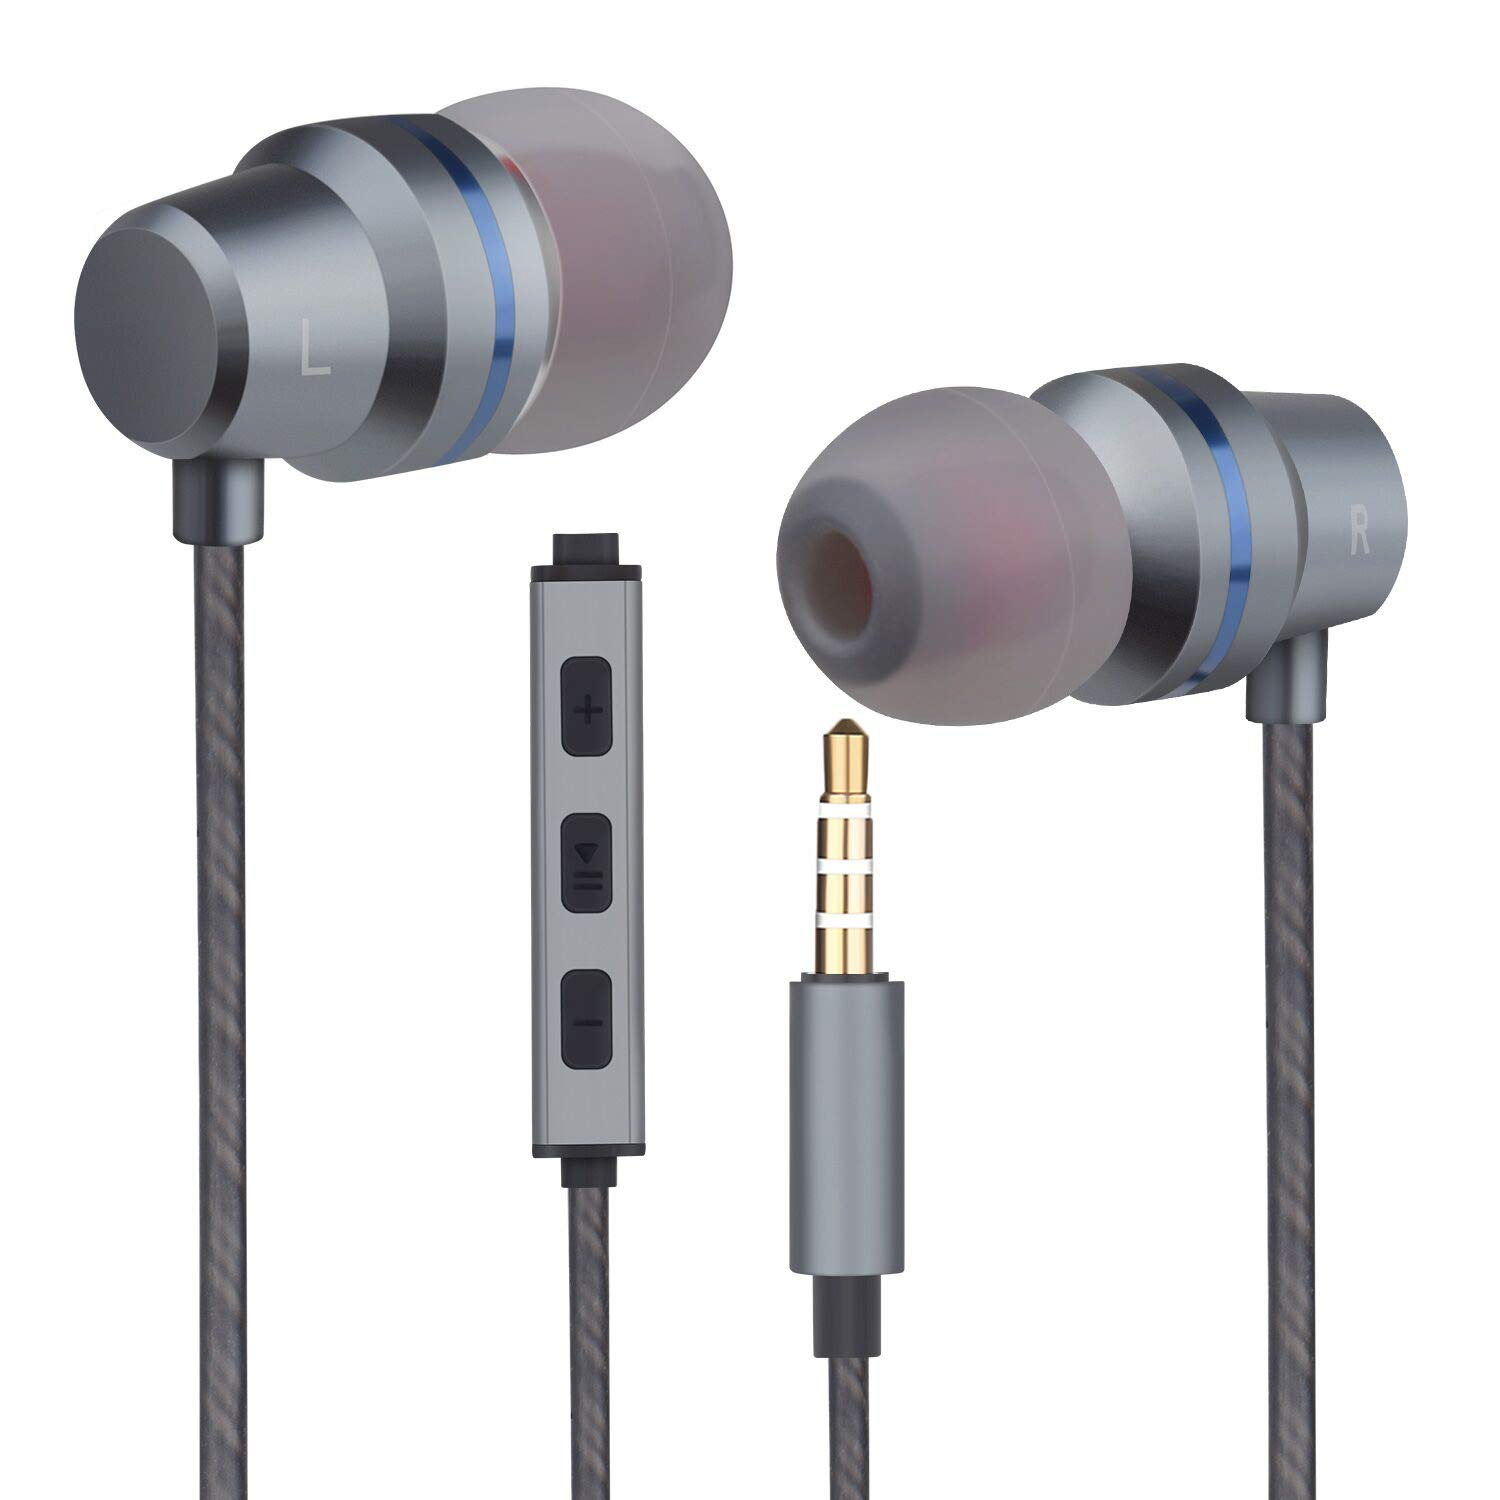 Earbuds Headphones with Microphone Mic Stereo Volume Control Wired Earphones in-Ear Noise-Isolating Ear Buds Compatible iPhone iPod iPad Samsung Android Galaxy LG HTC Tablet Laptop 3.5mm Audio